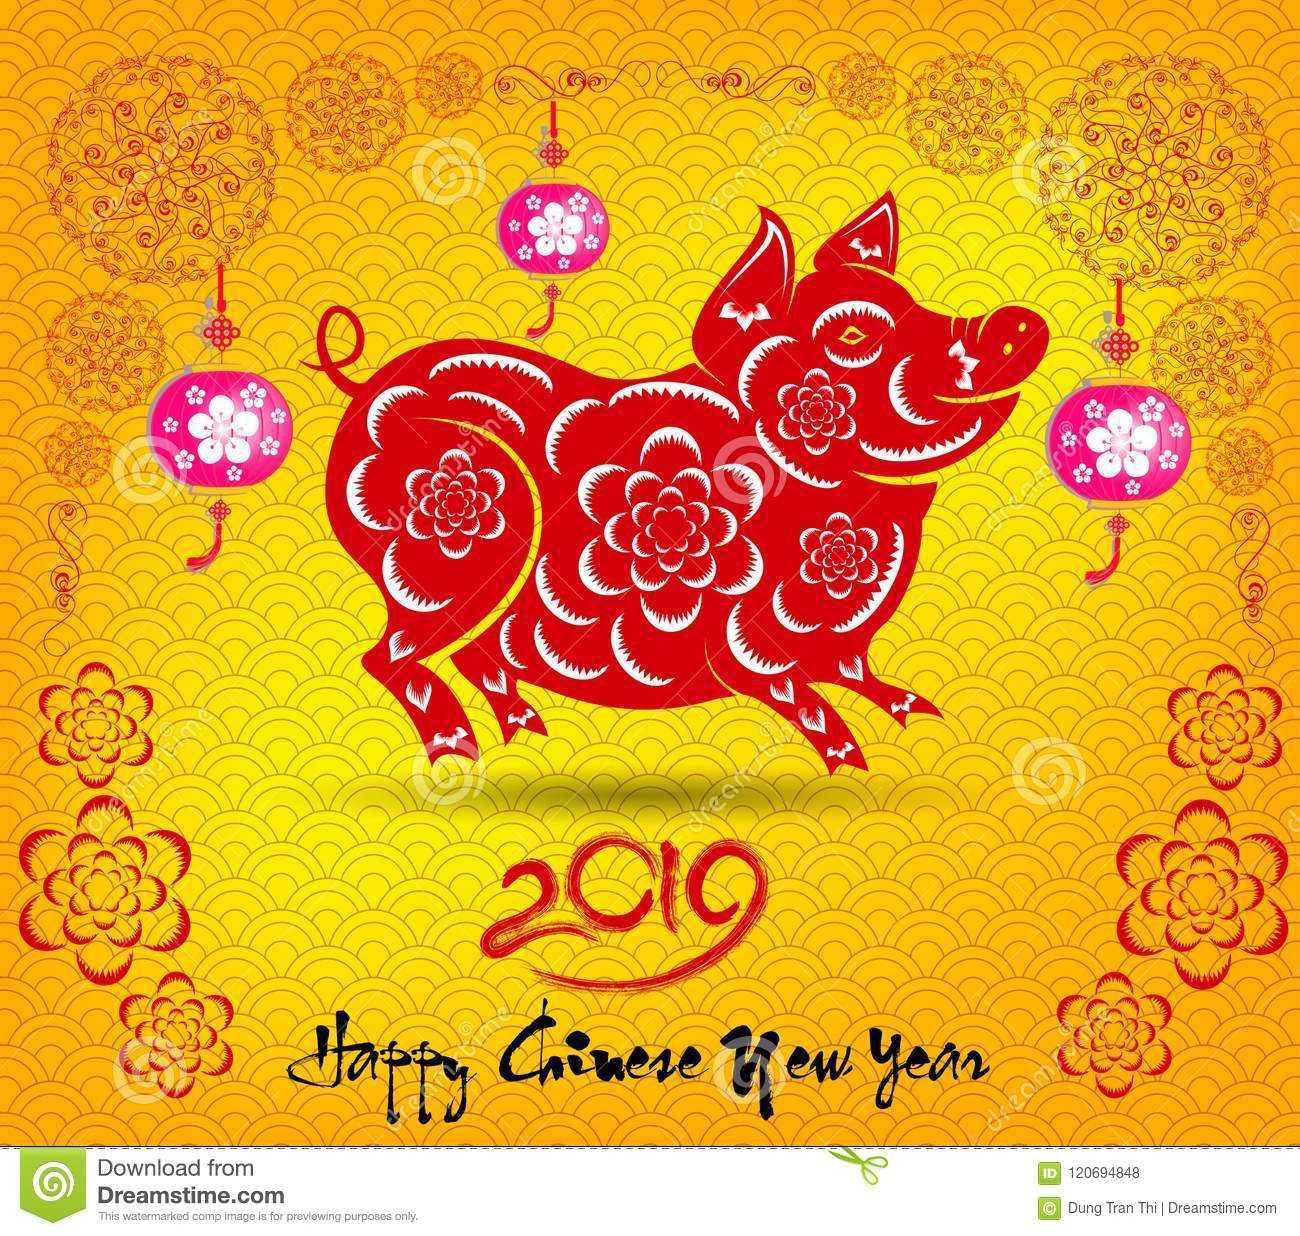 Chinese New Year 2019 Animal Happy Chinese New Year 2019 Year Of The Pig. Lunar New Year Stock